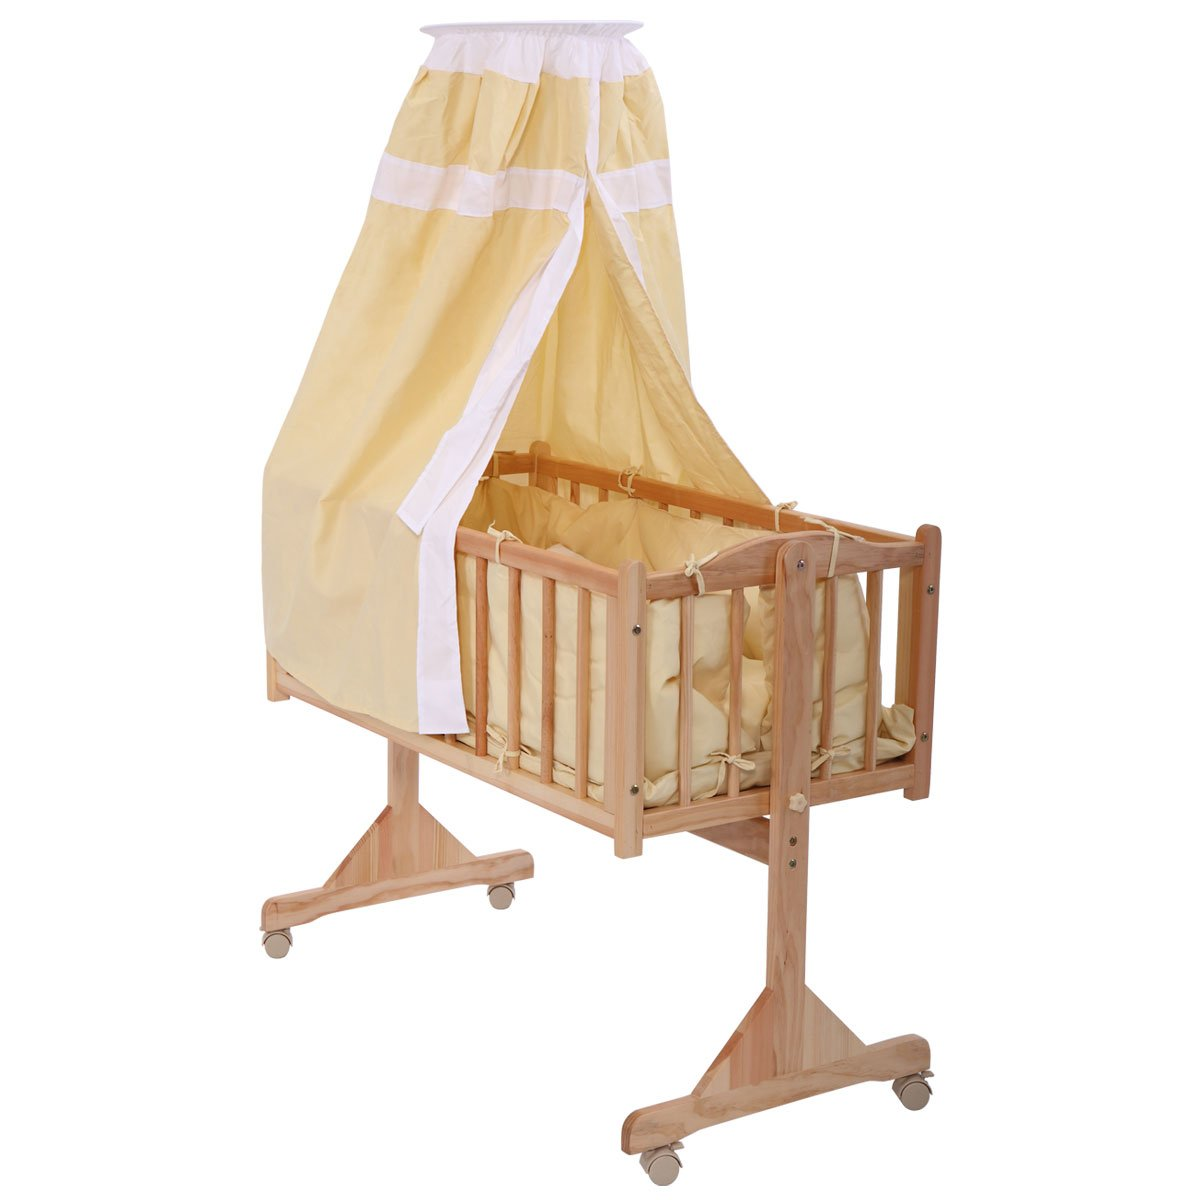 JAXPETY Wood Rocking Cradle,Gliding Bassinet with Canopy Bedding- Yellow